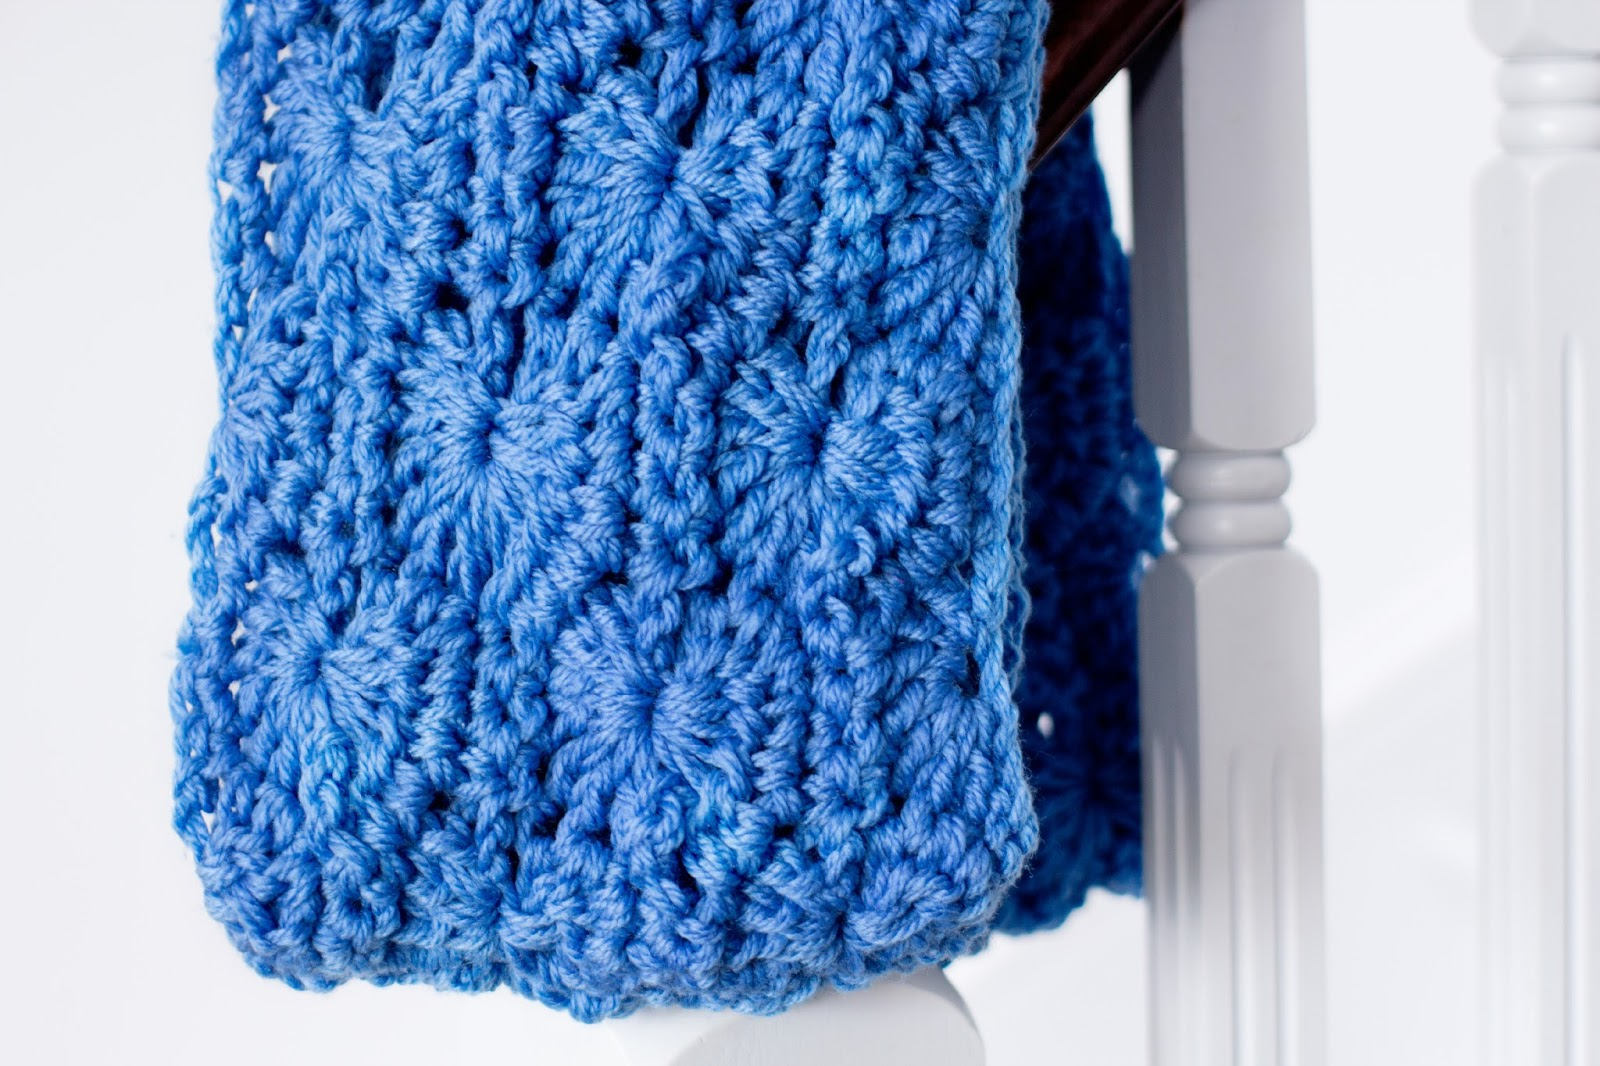 Crochet Crochet Crochet : ... Craft, Crochet, Create: A Unique Gift ~ Infinity Scarf Crochet Pattern